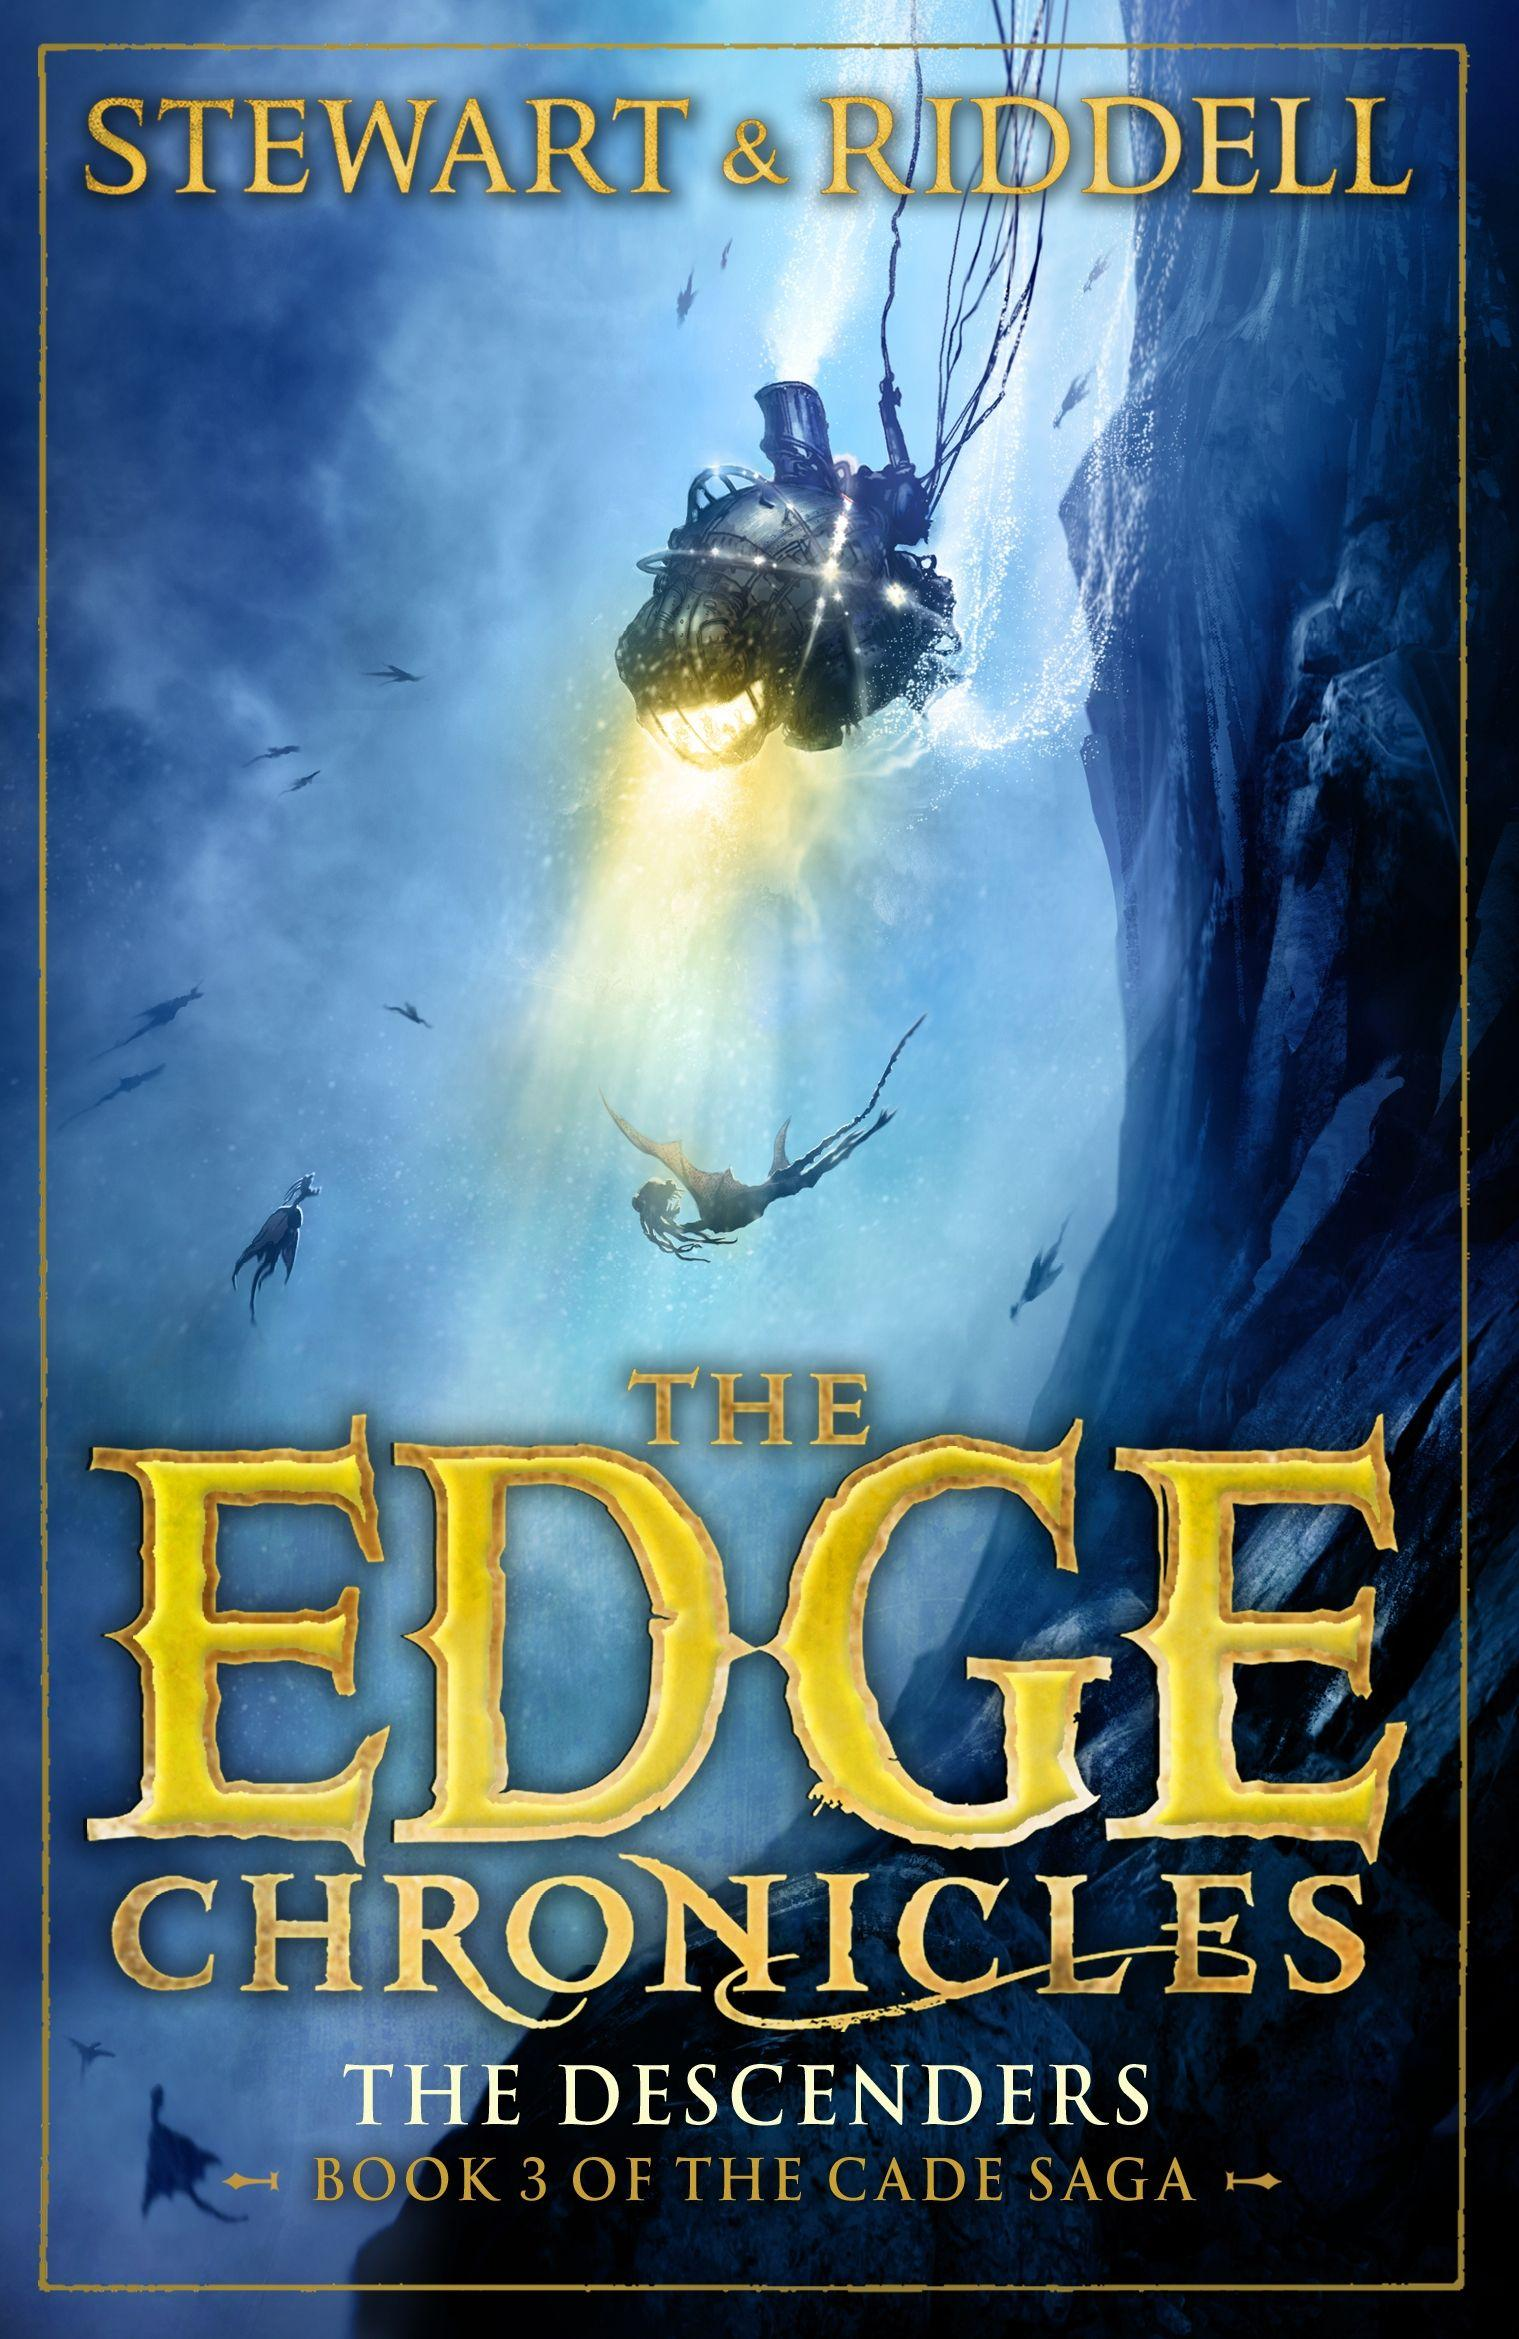 The Edge Chronicles 13: The Descenders: Third Book of Cade by Chris Riddell and Paul Stewart